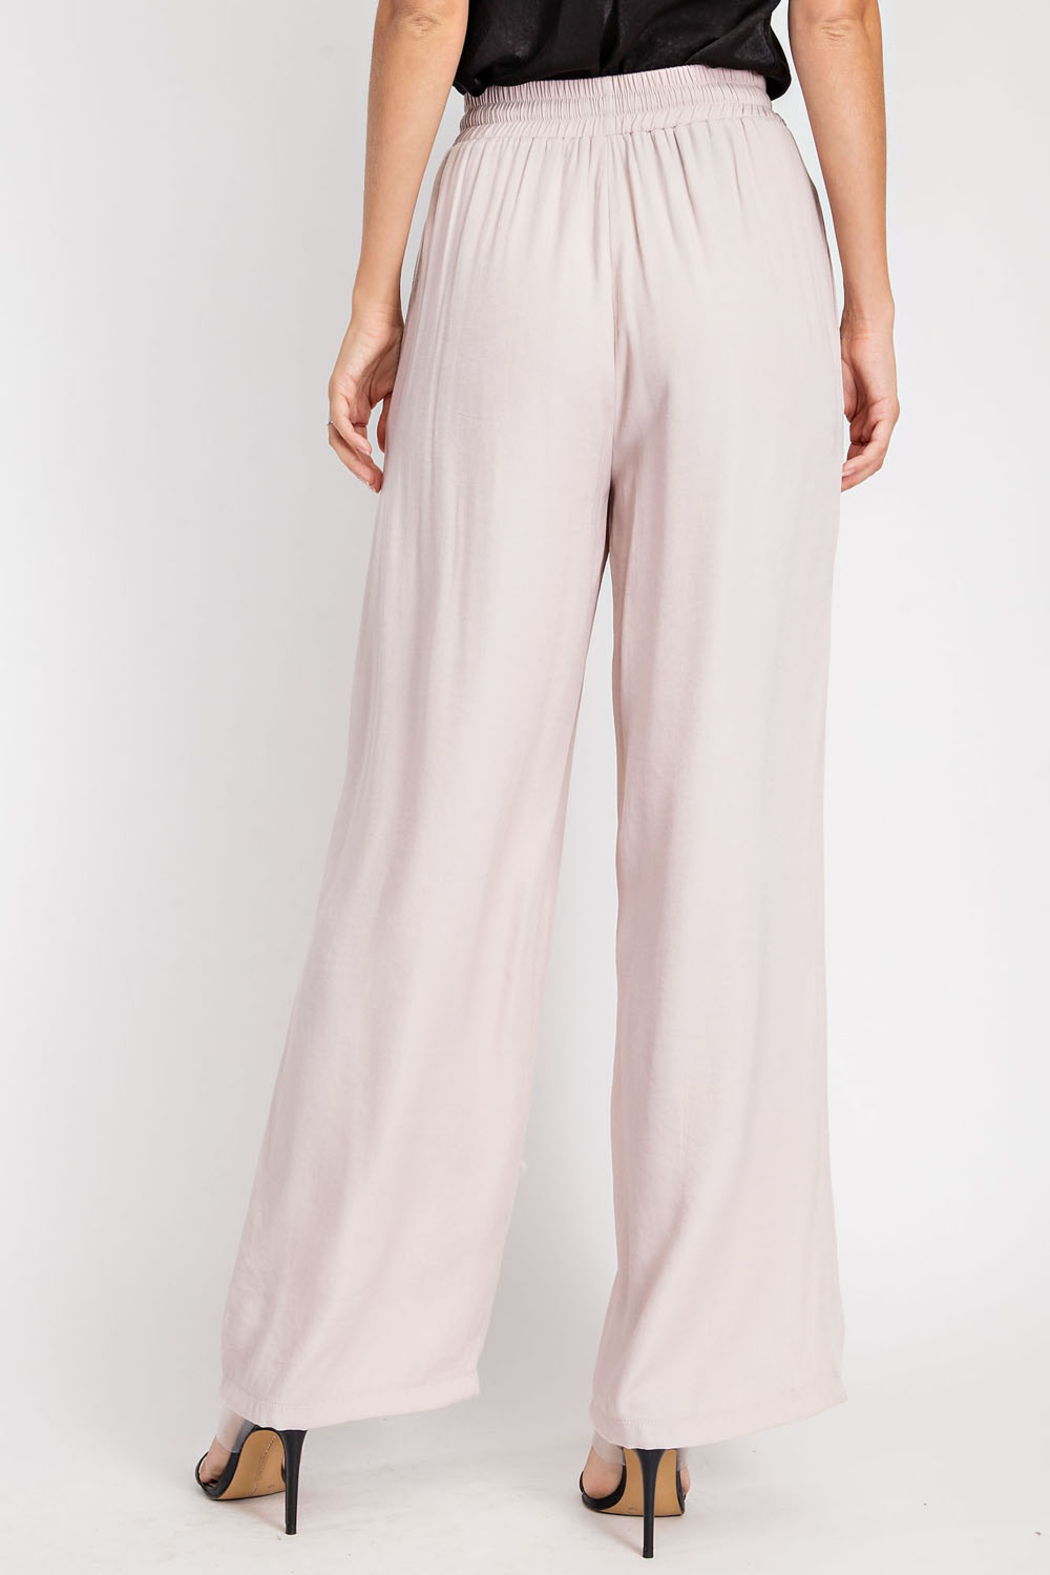 Glam High Waist Flowy pants - Front Full Image